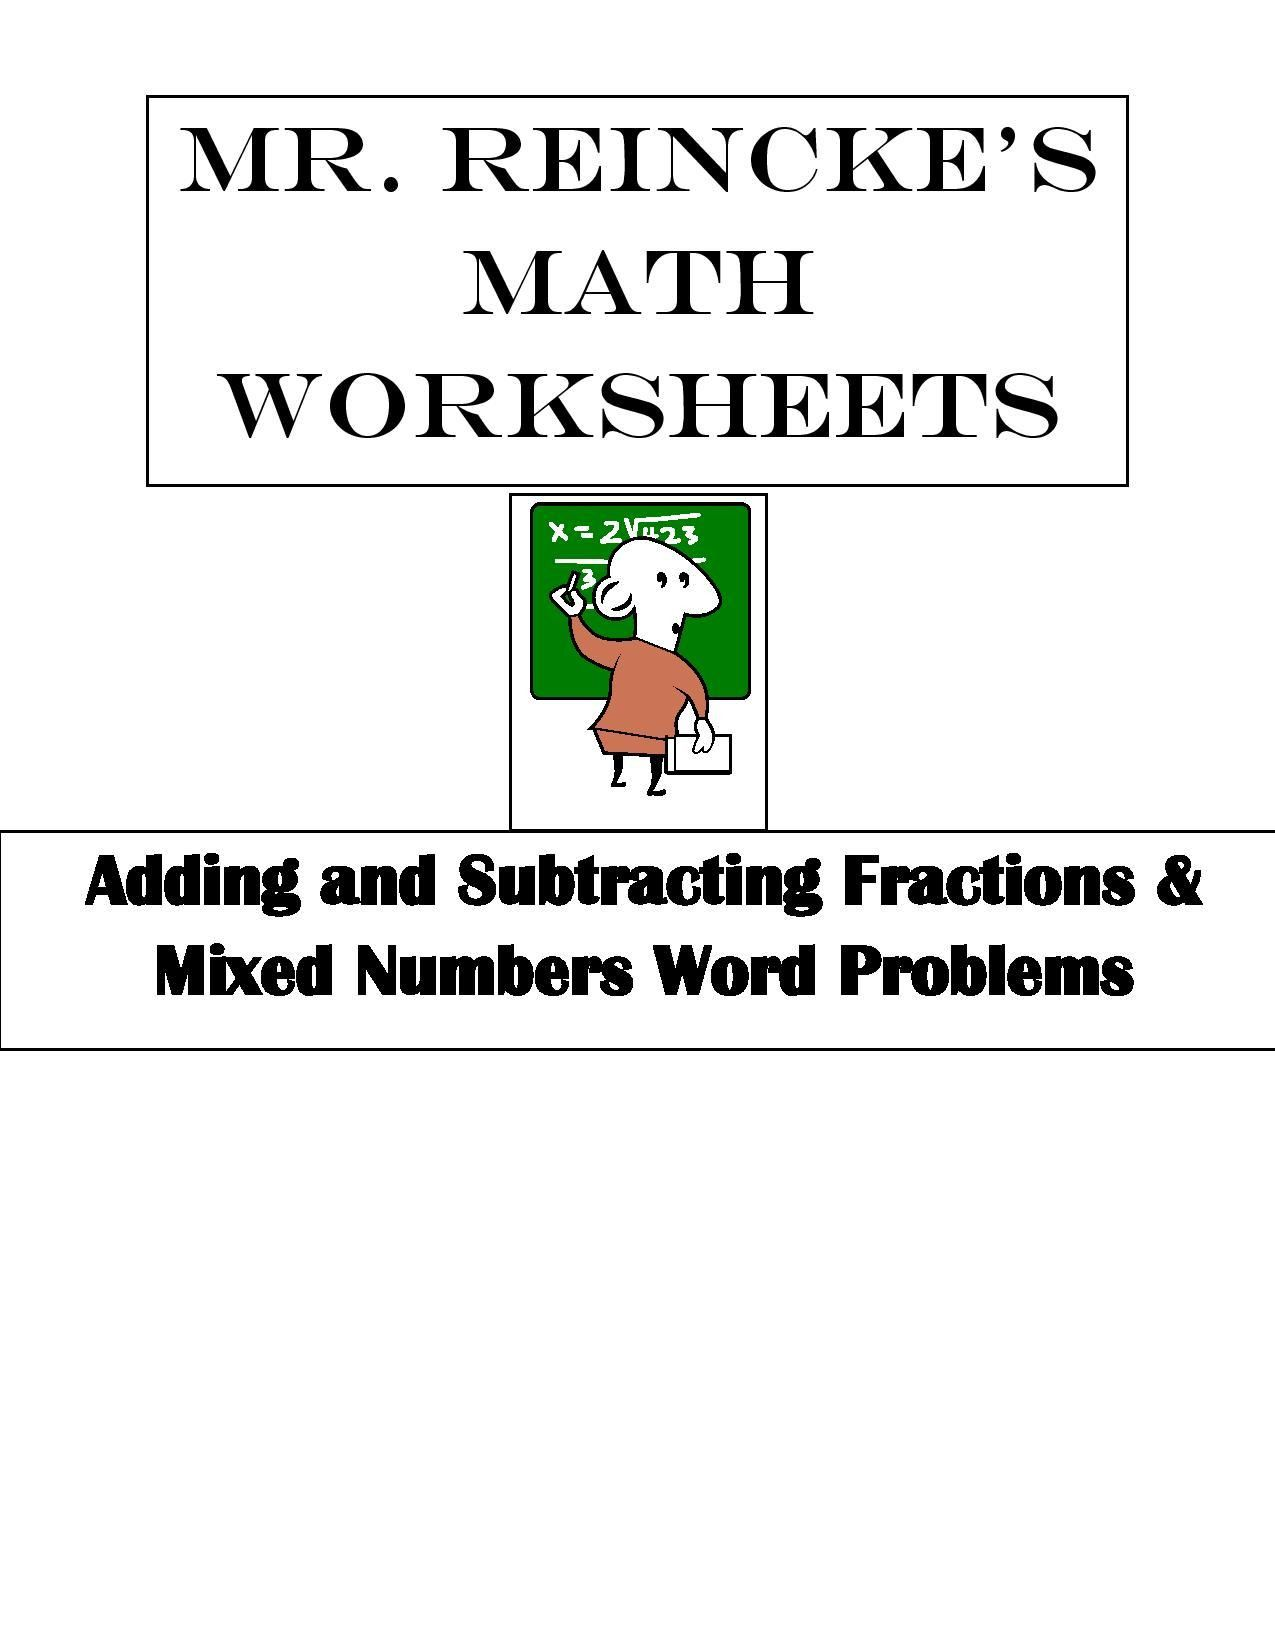 4 Subtracting Fractions Word Problems In